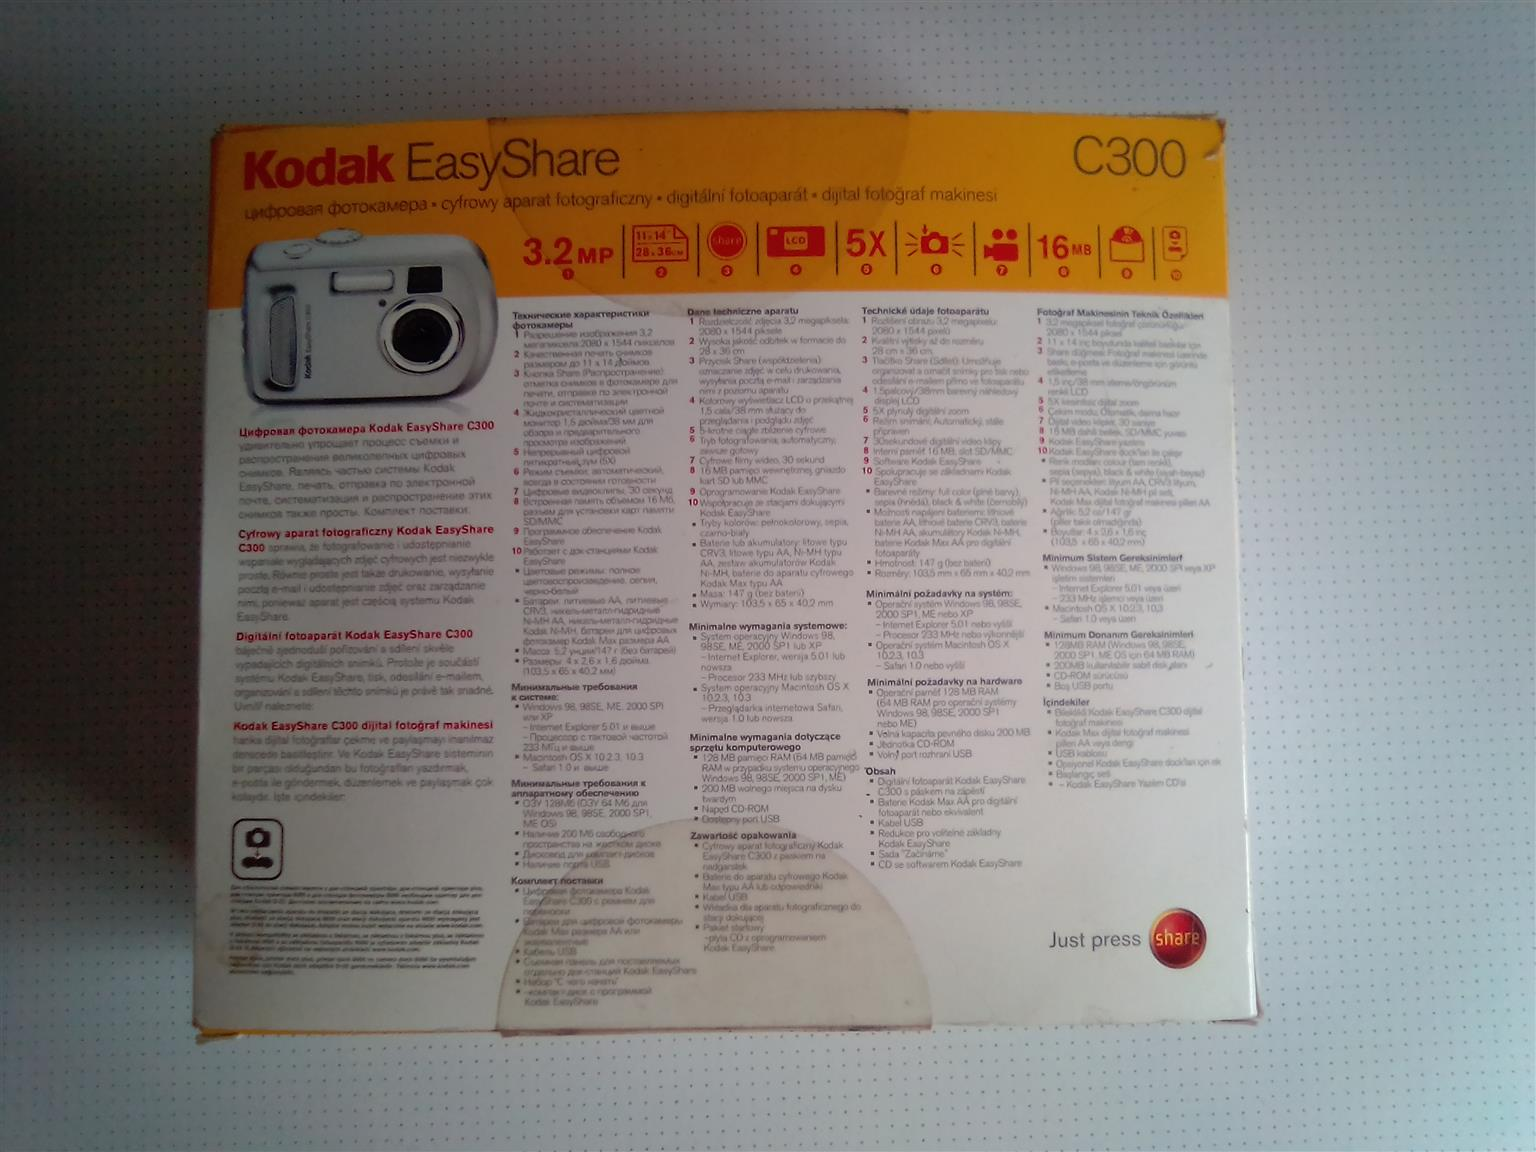 Kodak Digital Camera. In a box. With Charger,USB cable and CD.